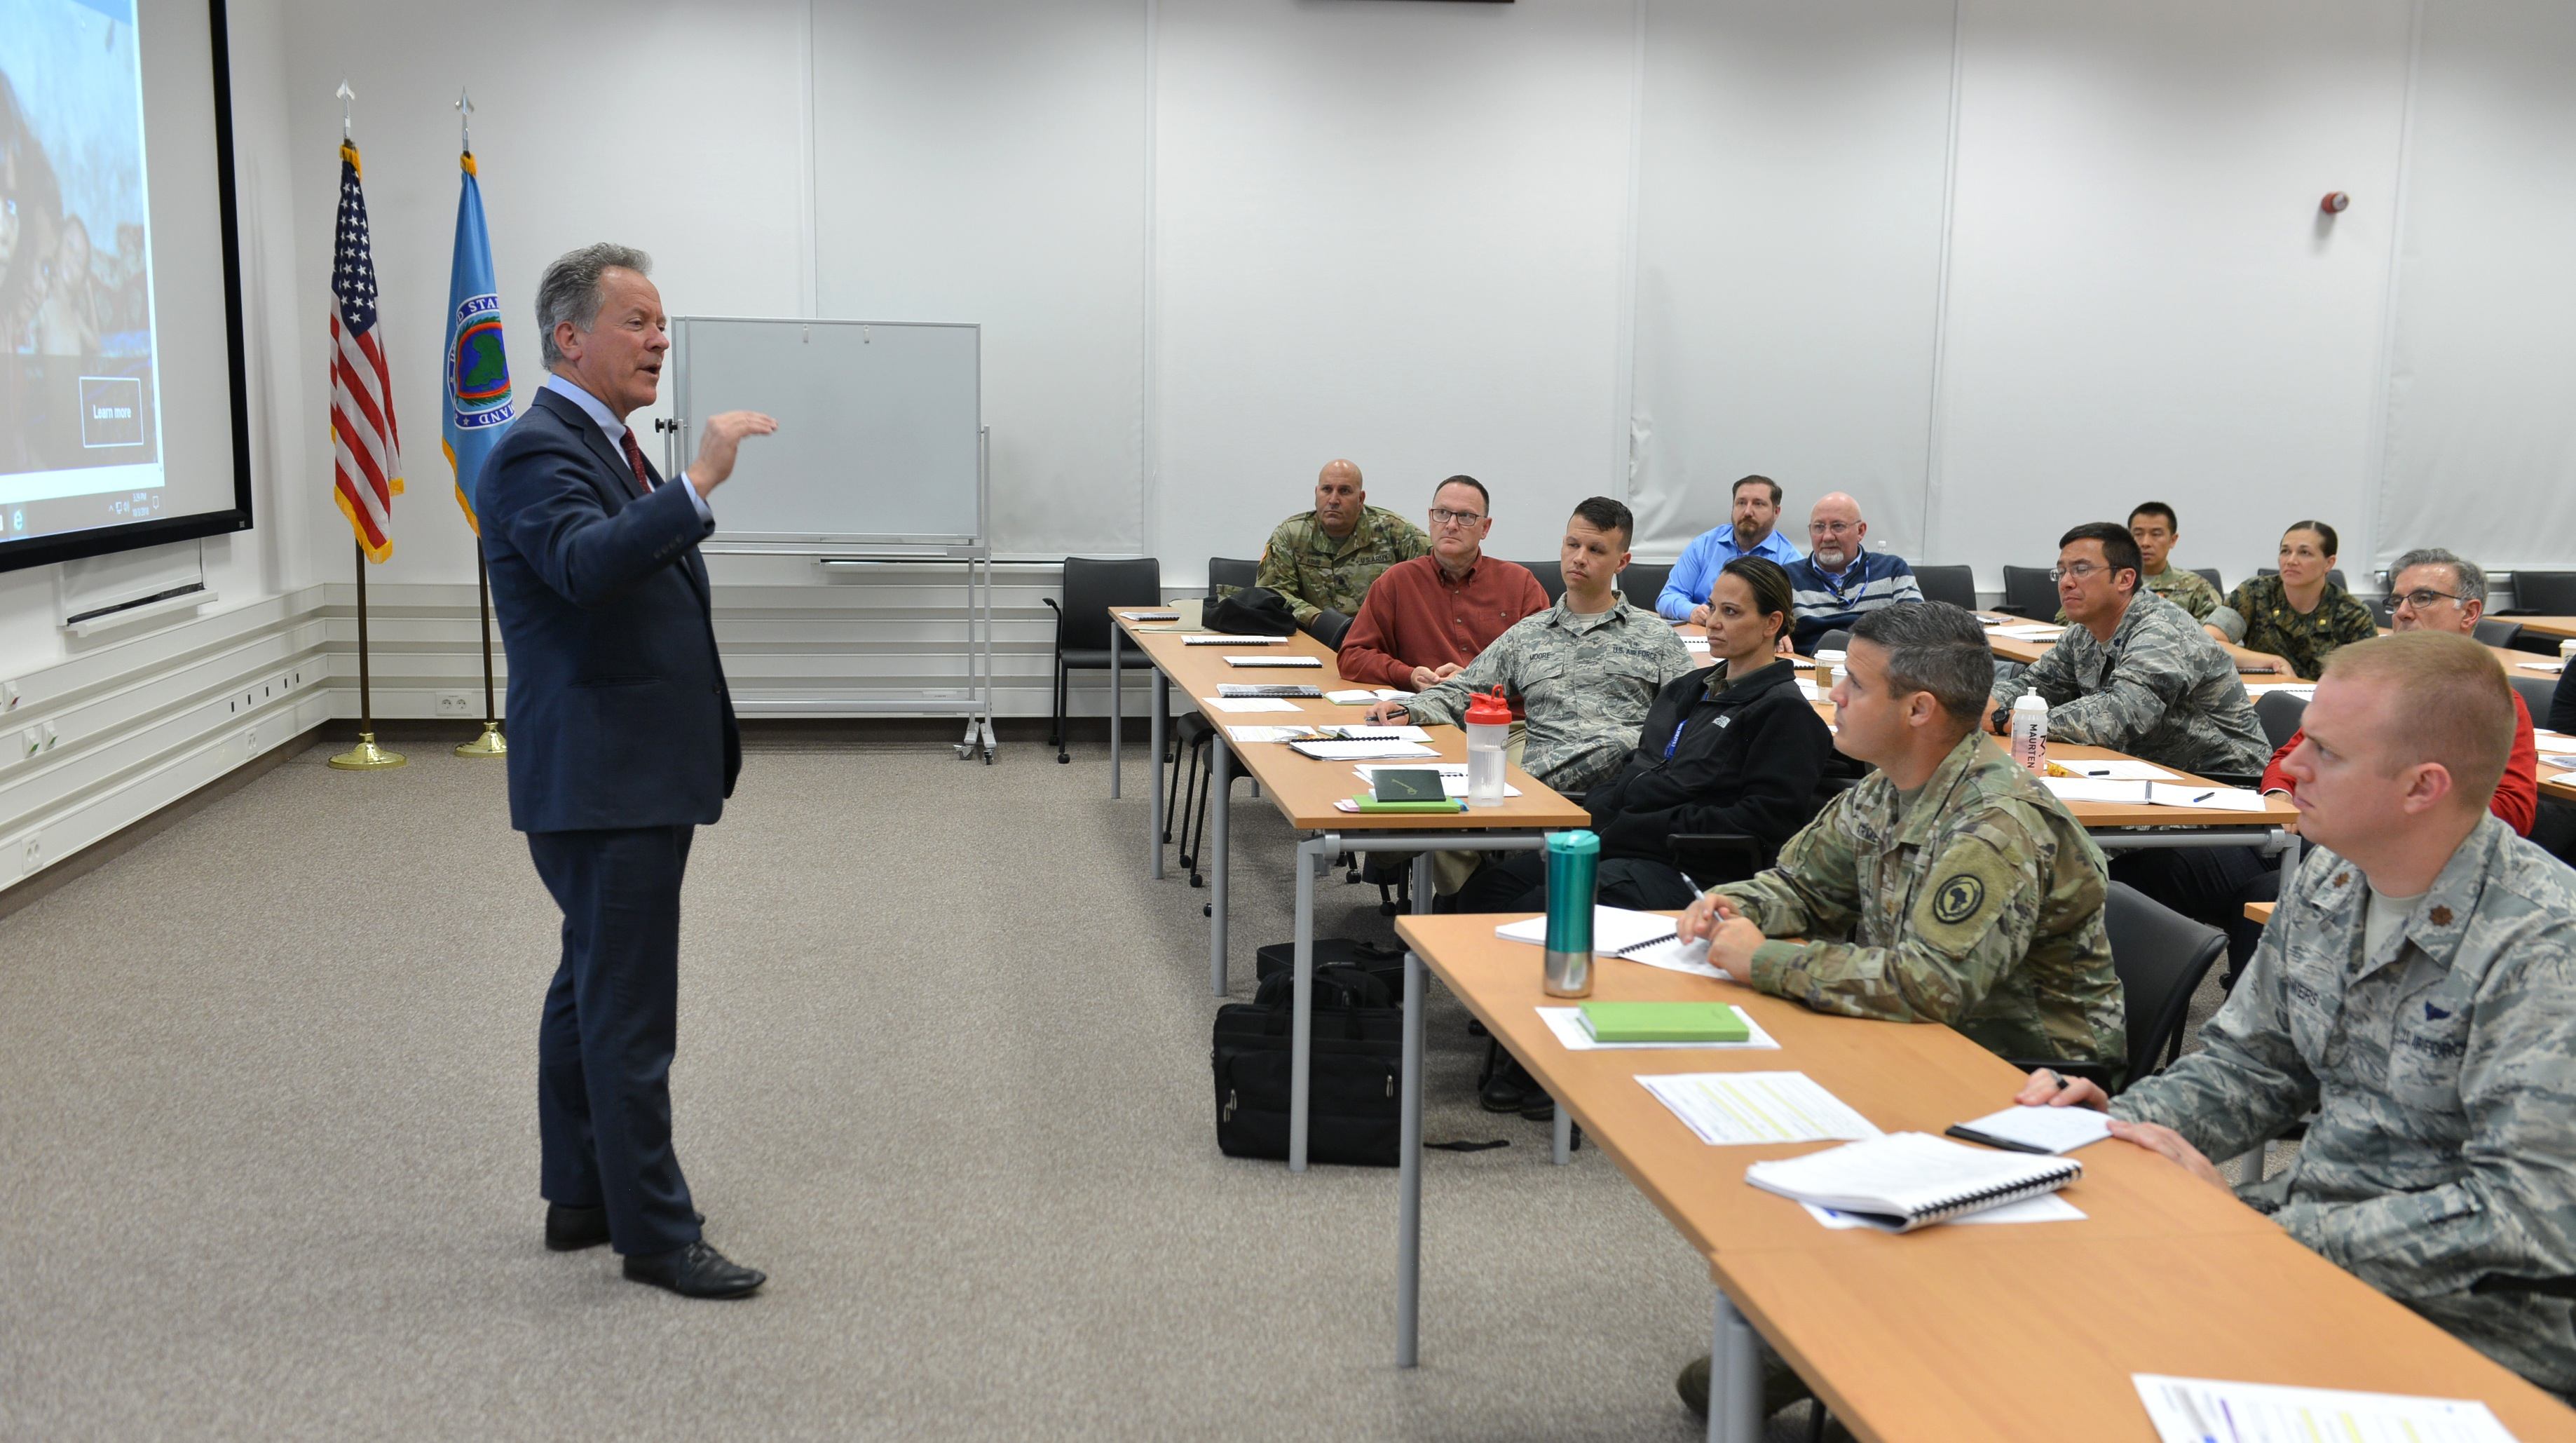 David Beasley, Executive Director of the U.N. World Food Program, addresses attendees of the Joint Humanitarian Operations Course, Oct. 4, 2018, at the U.S. Africa Command Special Events Center.